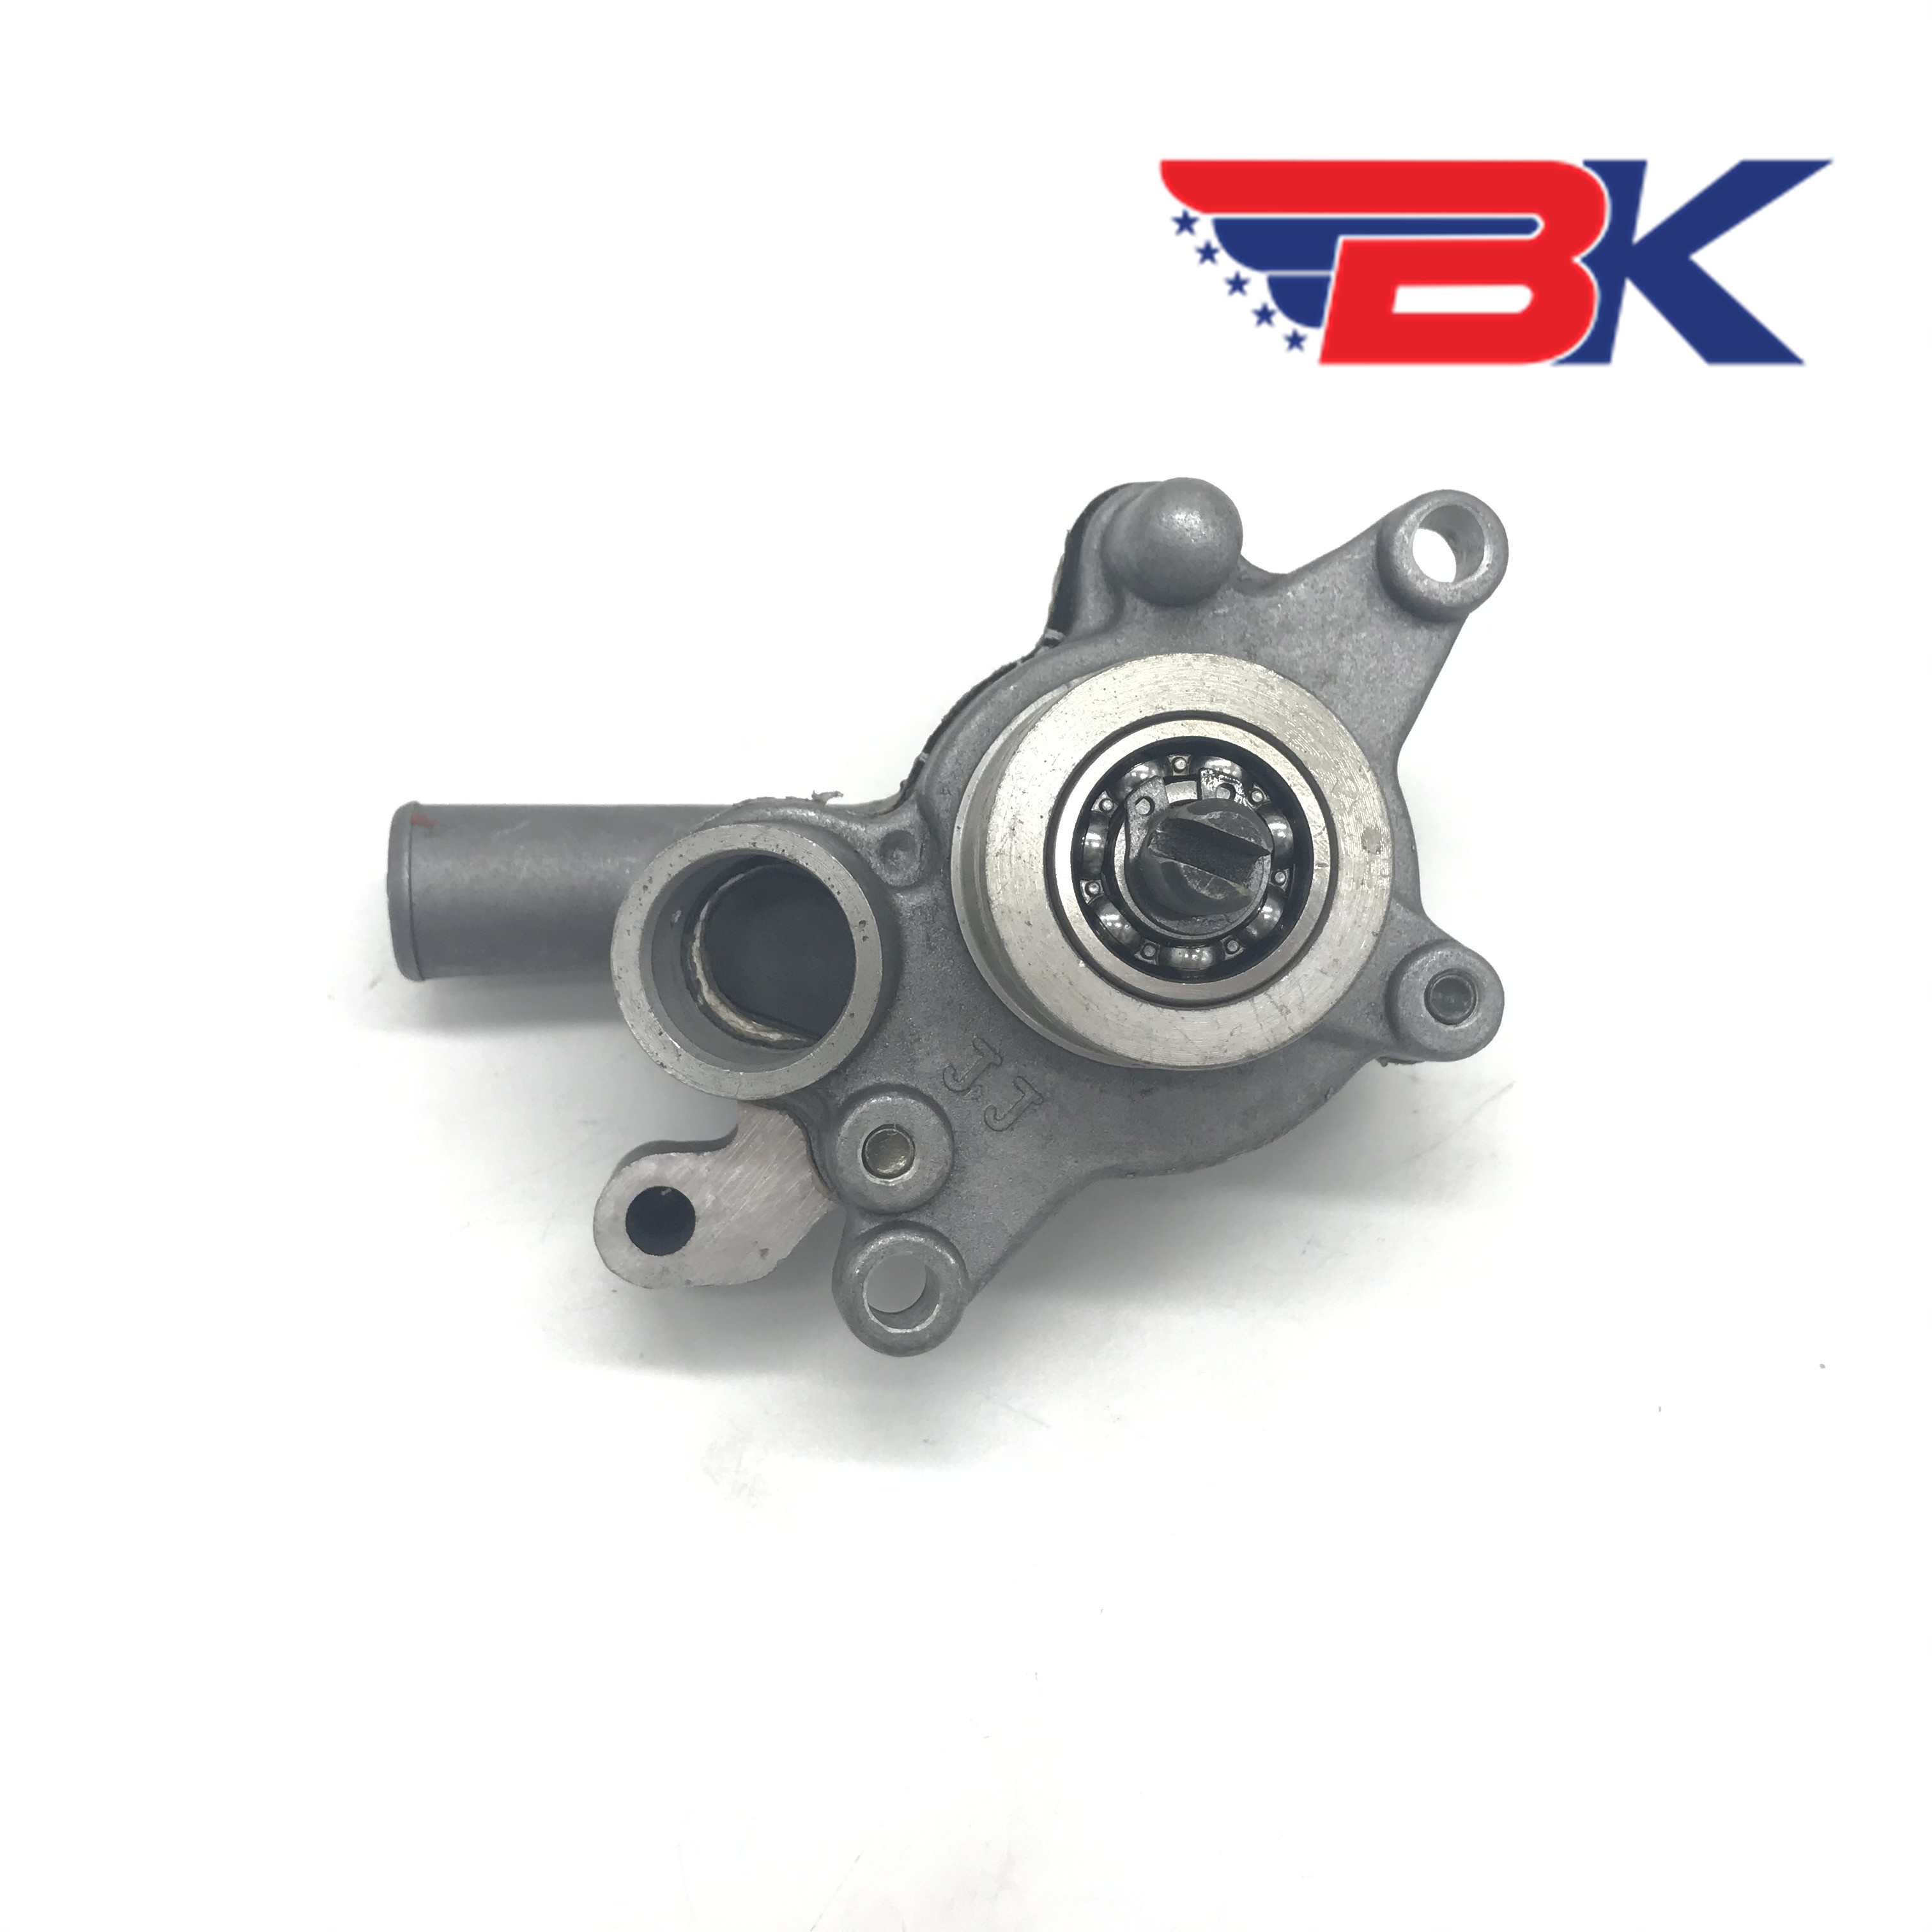 Original Buyang Water Pump Assy BUYANG 300CC ATV QUAD D300 <font><b>G300</b></font> ATV parts image